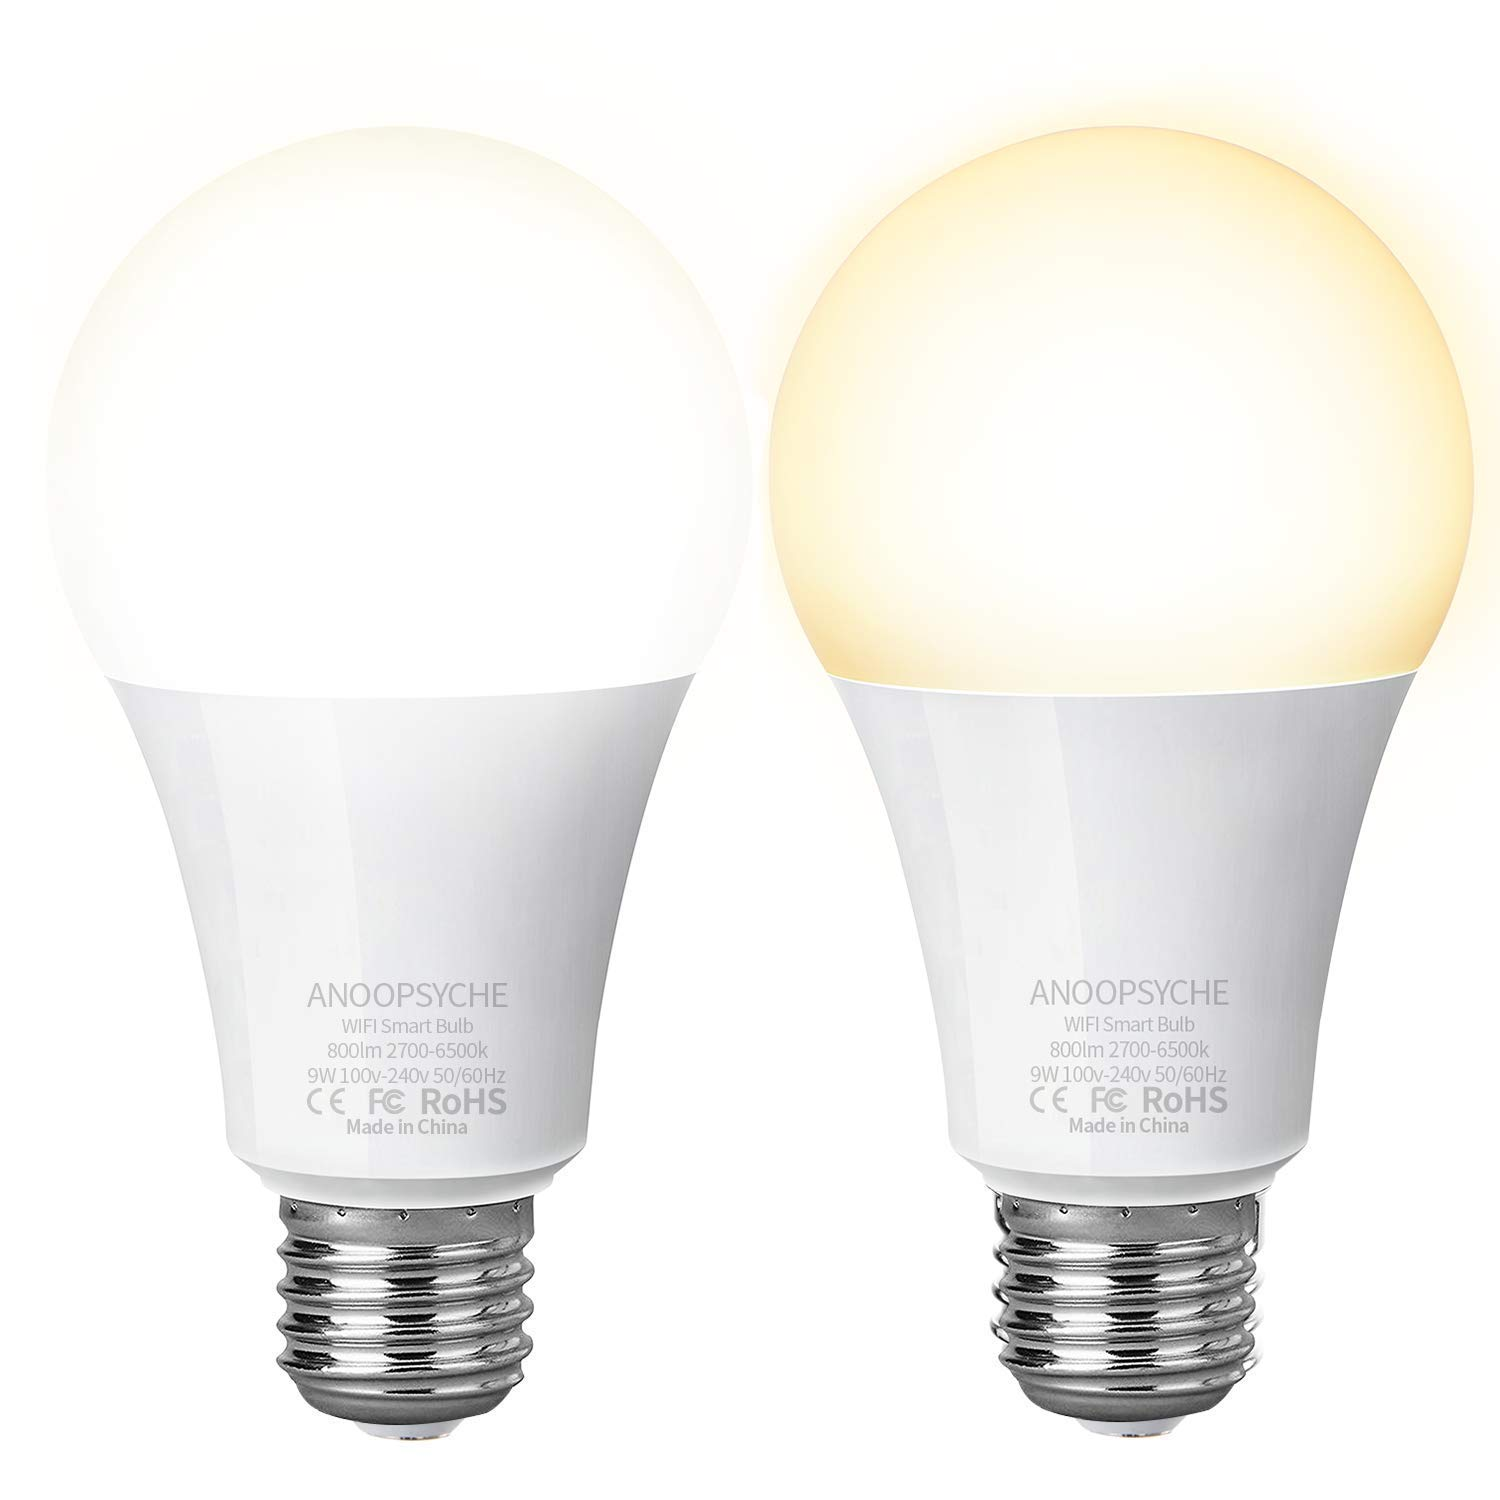 Anoopsyche Smart LED Bulb WiFi Light Bulb E26 Dimmable 2700K-6500K 800LM 9W Equivalent A19 60W Works with Amazon Alexa and Google Assistant IFTTT No Hub Required (2 Pack) product image